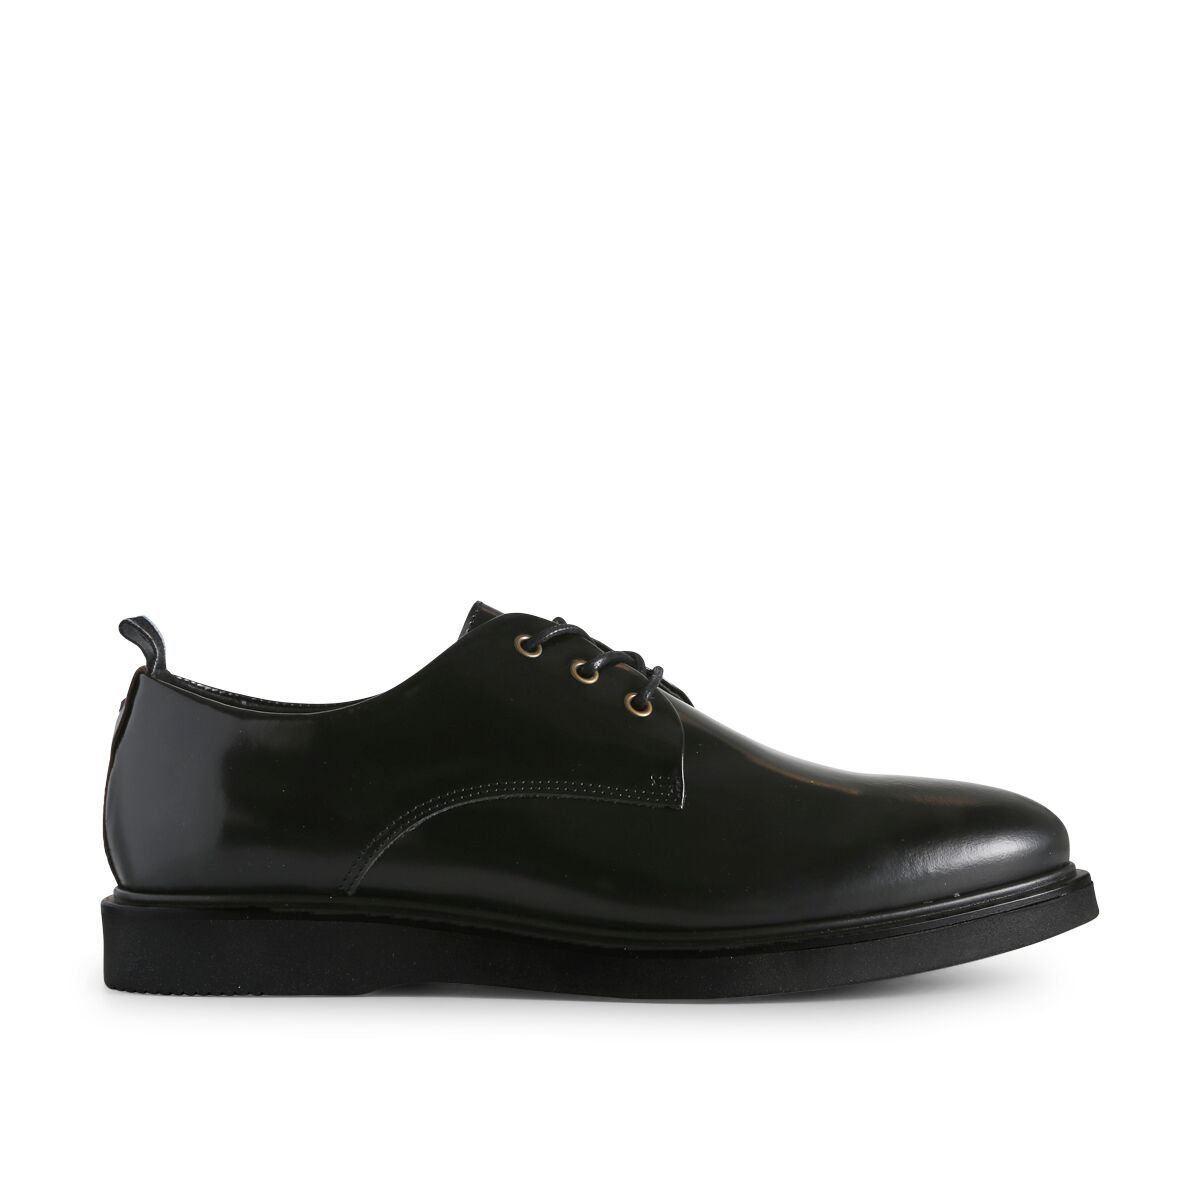 TALLA 45 EU. Shoe The Bear Roddy P, Zapatos de Cordones Derby para Hombre